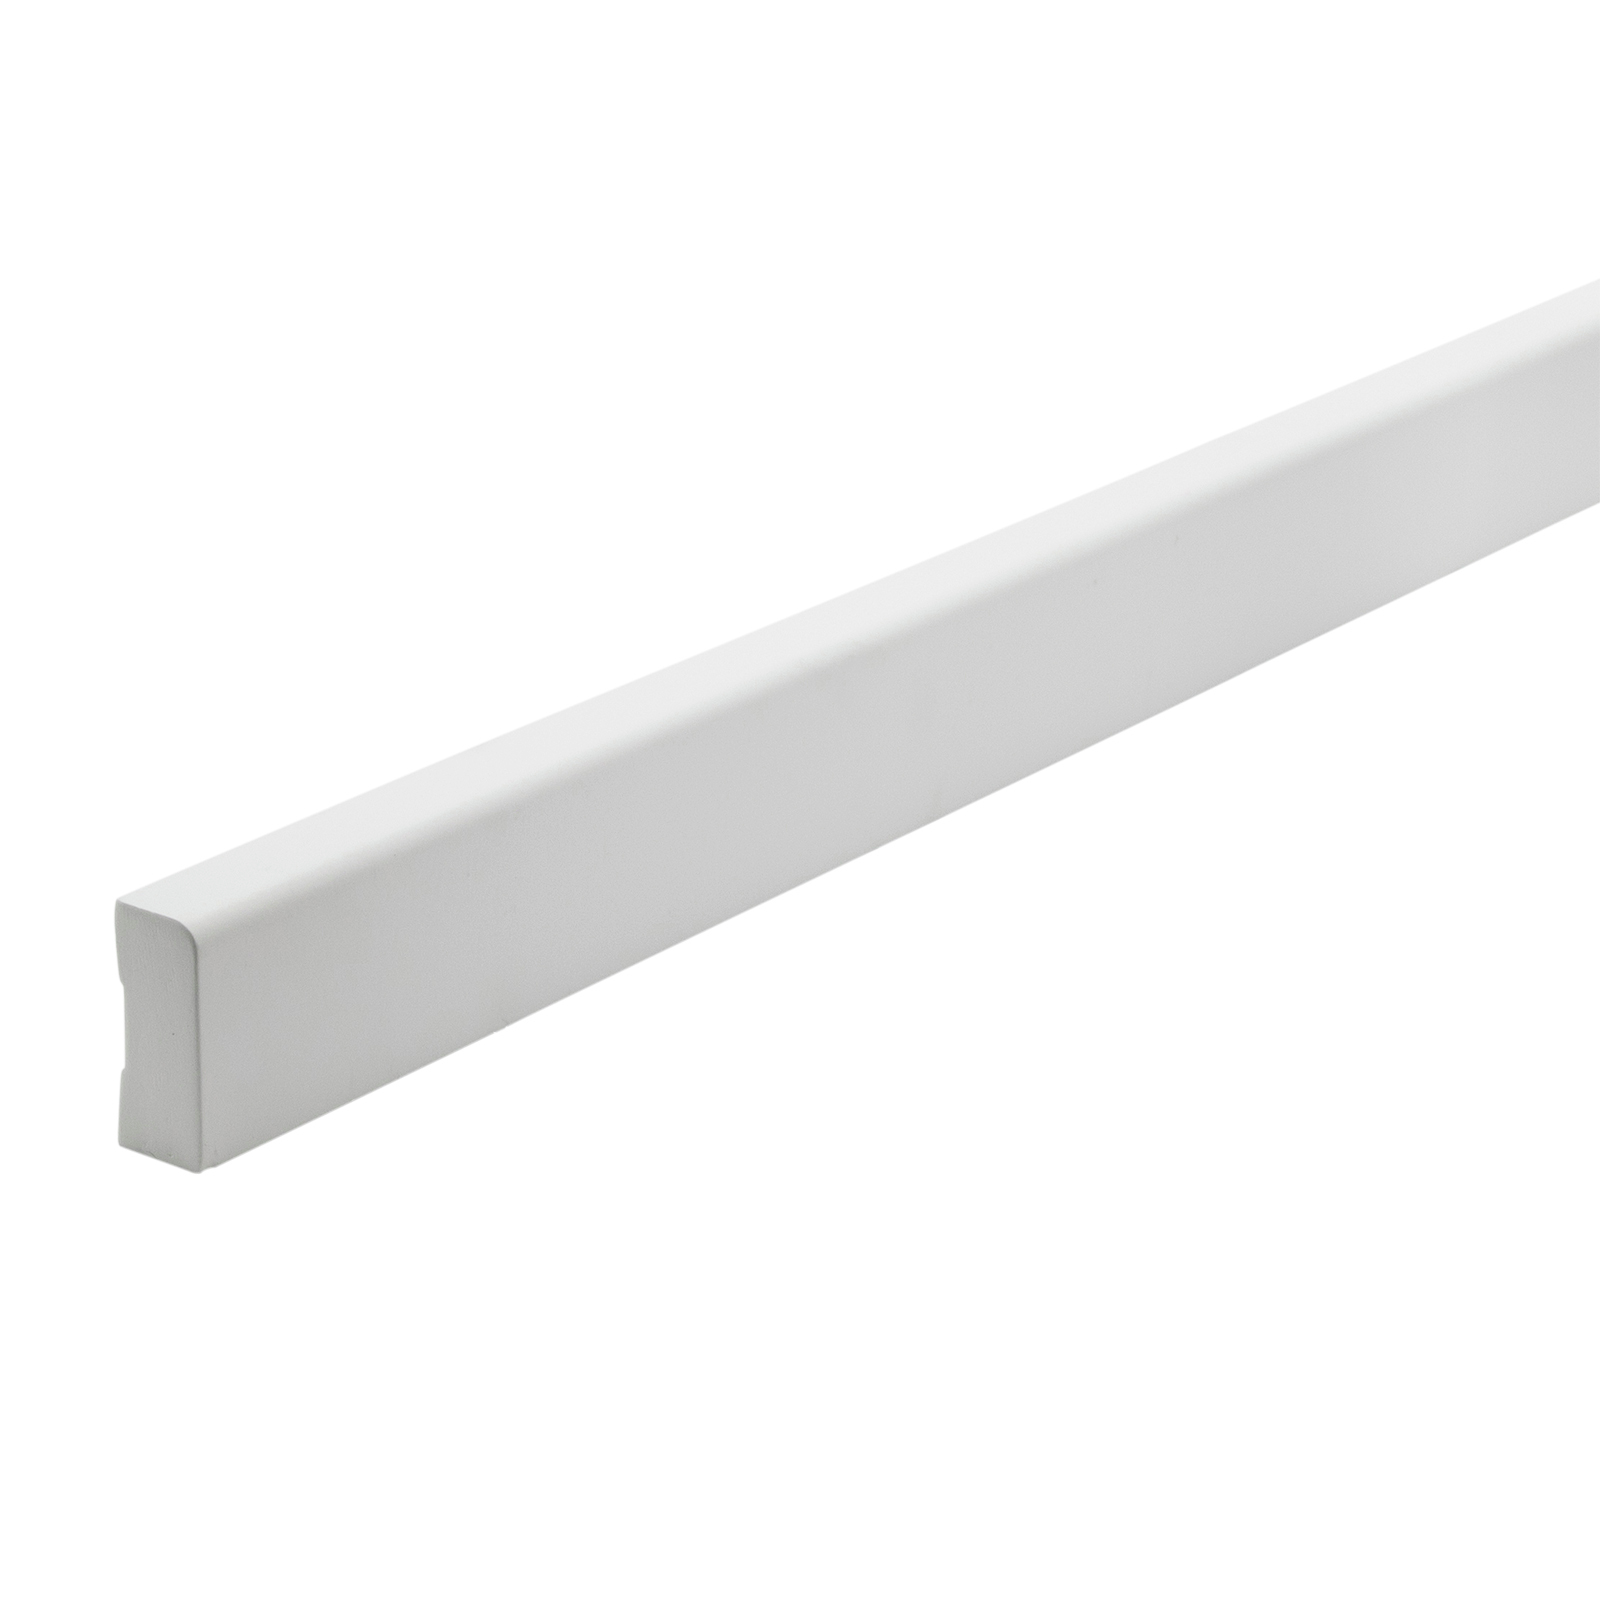 Woodhouse EdgeLine 42 x 18mm 5.4m Pencil Round White Primed Finger Jointed Pine Moulding